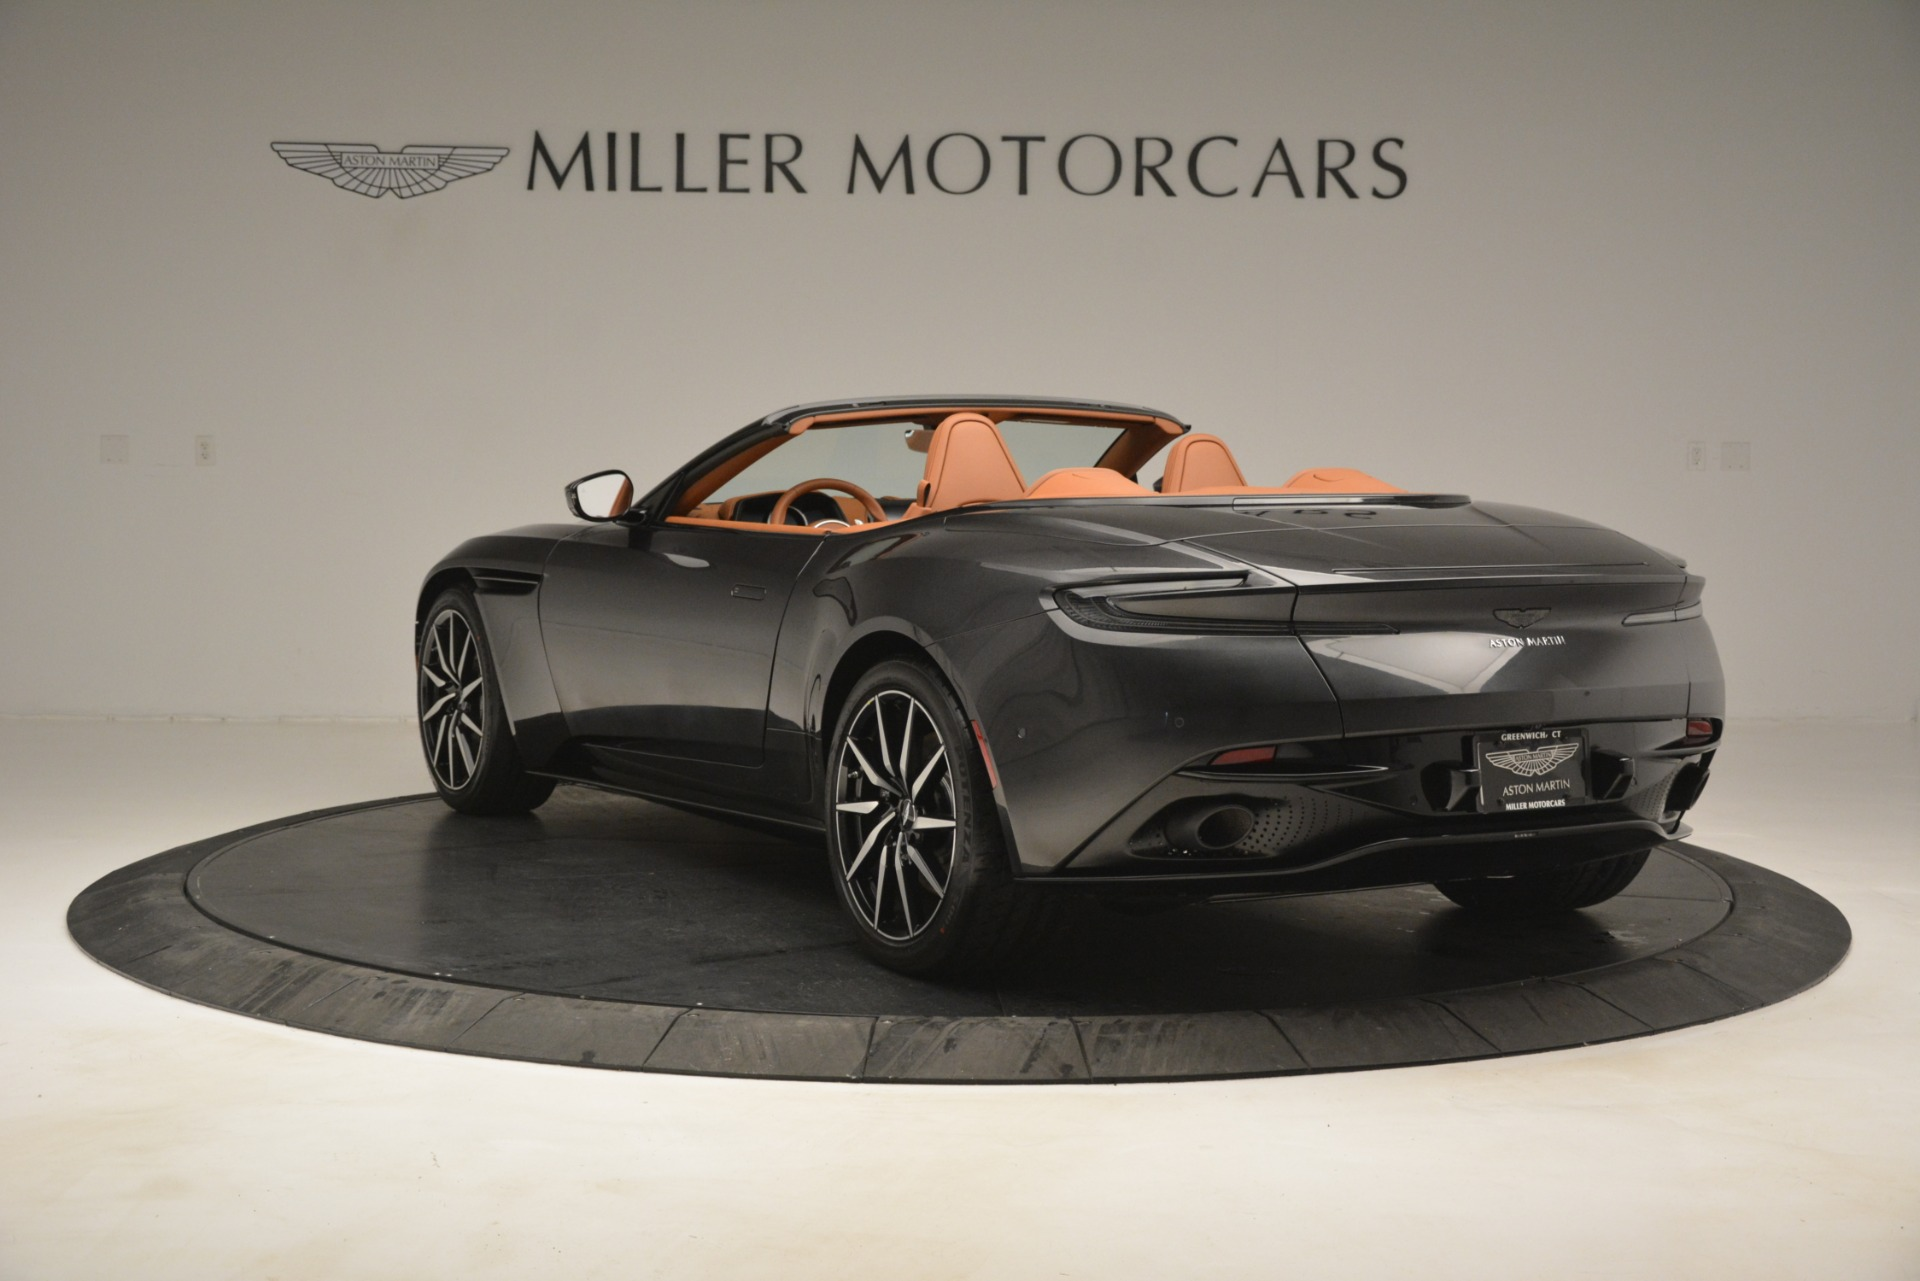 Used 2019 Aston Martin DB11 V8 Volante For Sale In Westport, CT 3434_p4